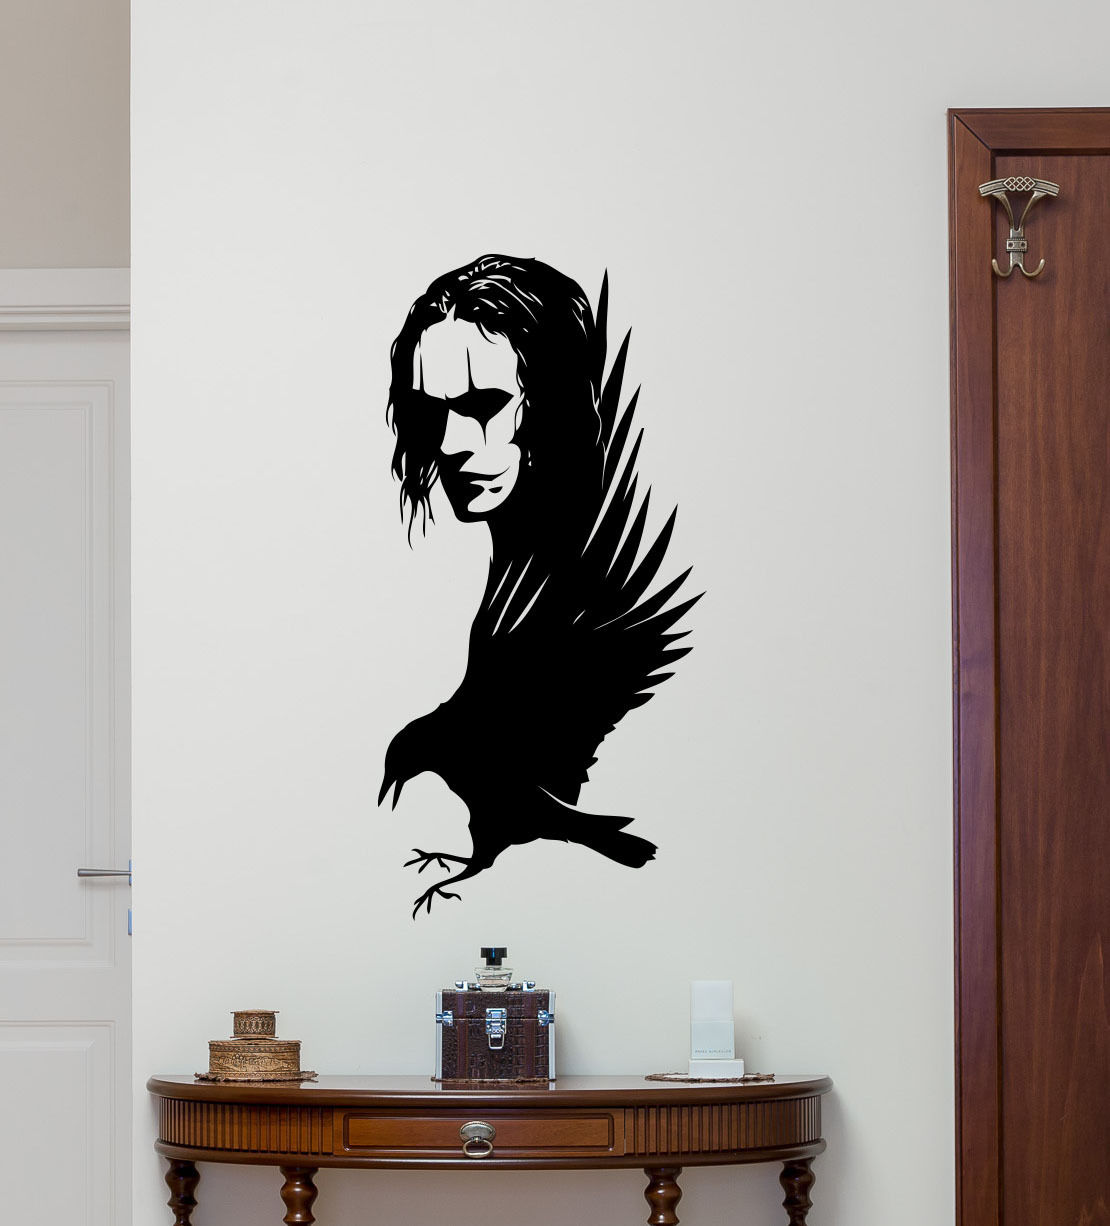 The Crow Tatuajes de pared Brandon Lee Movie Vinyl Sticker Poster Decoración para el hogar Arte Decoraciones Salón Mural Extraíble E574